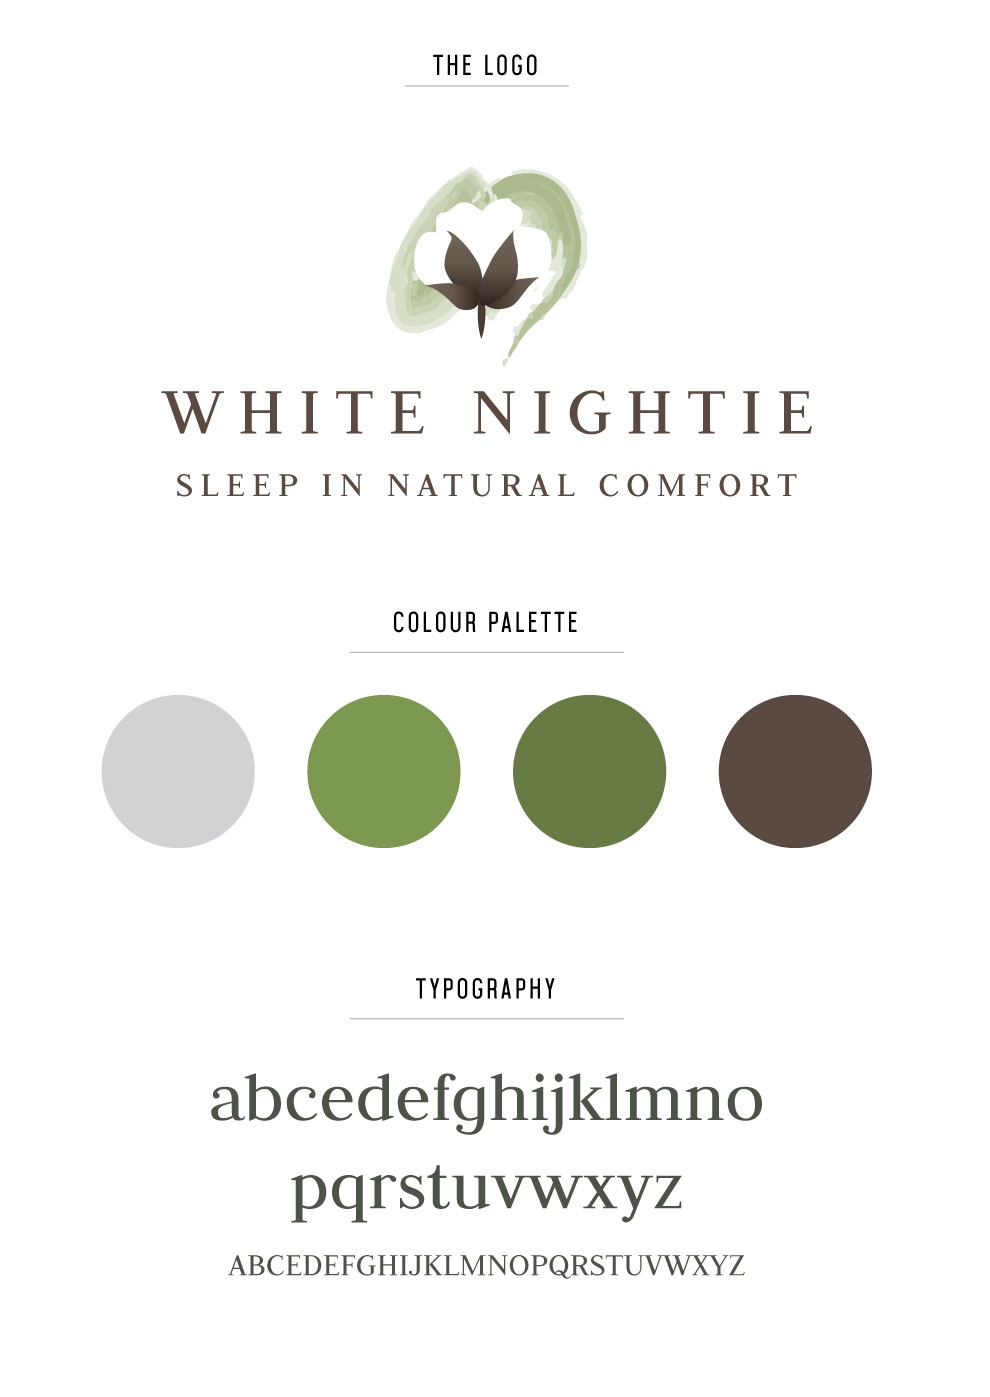 White Nightie Logo Design